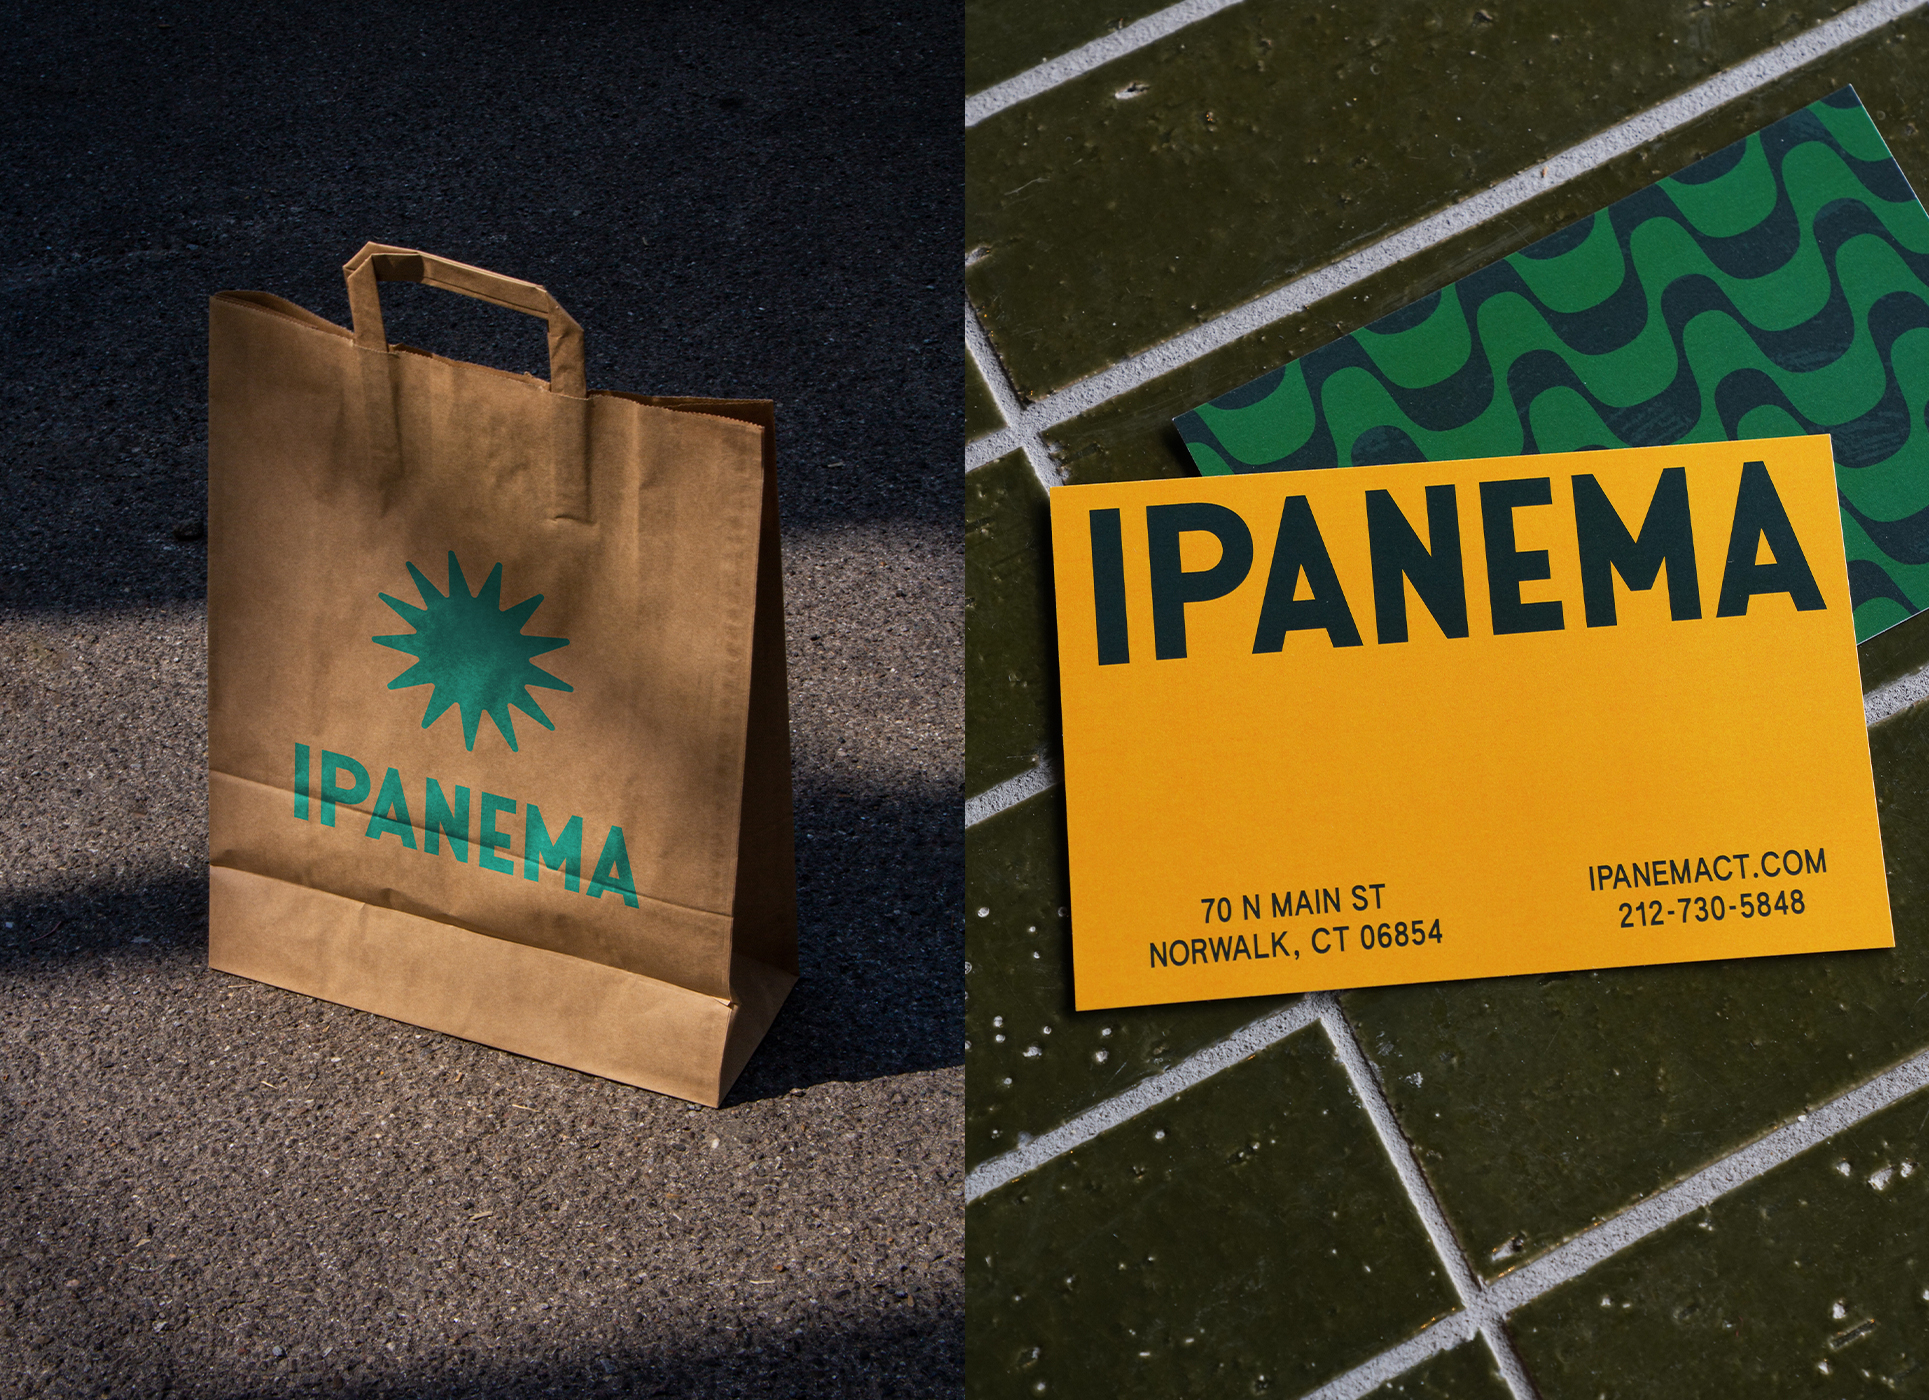 ipanema brown paper bag and business cards